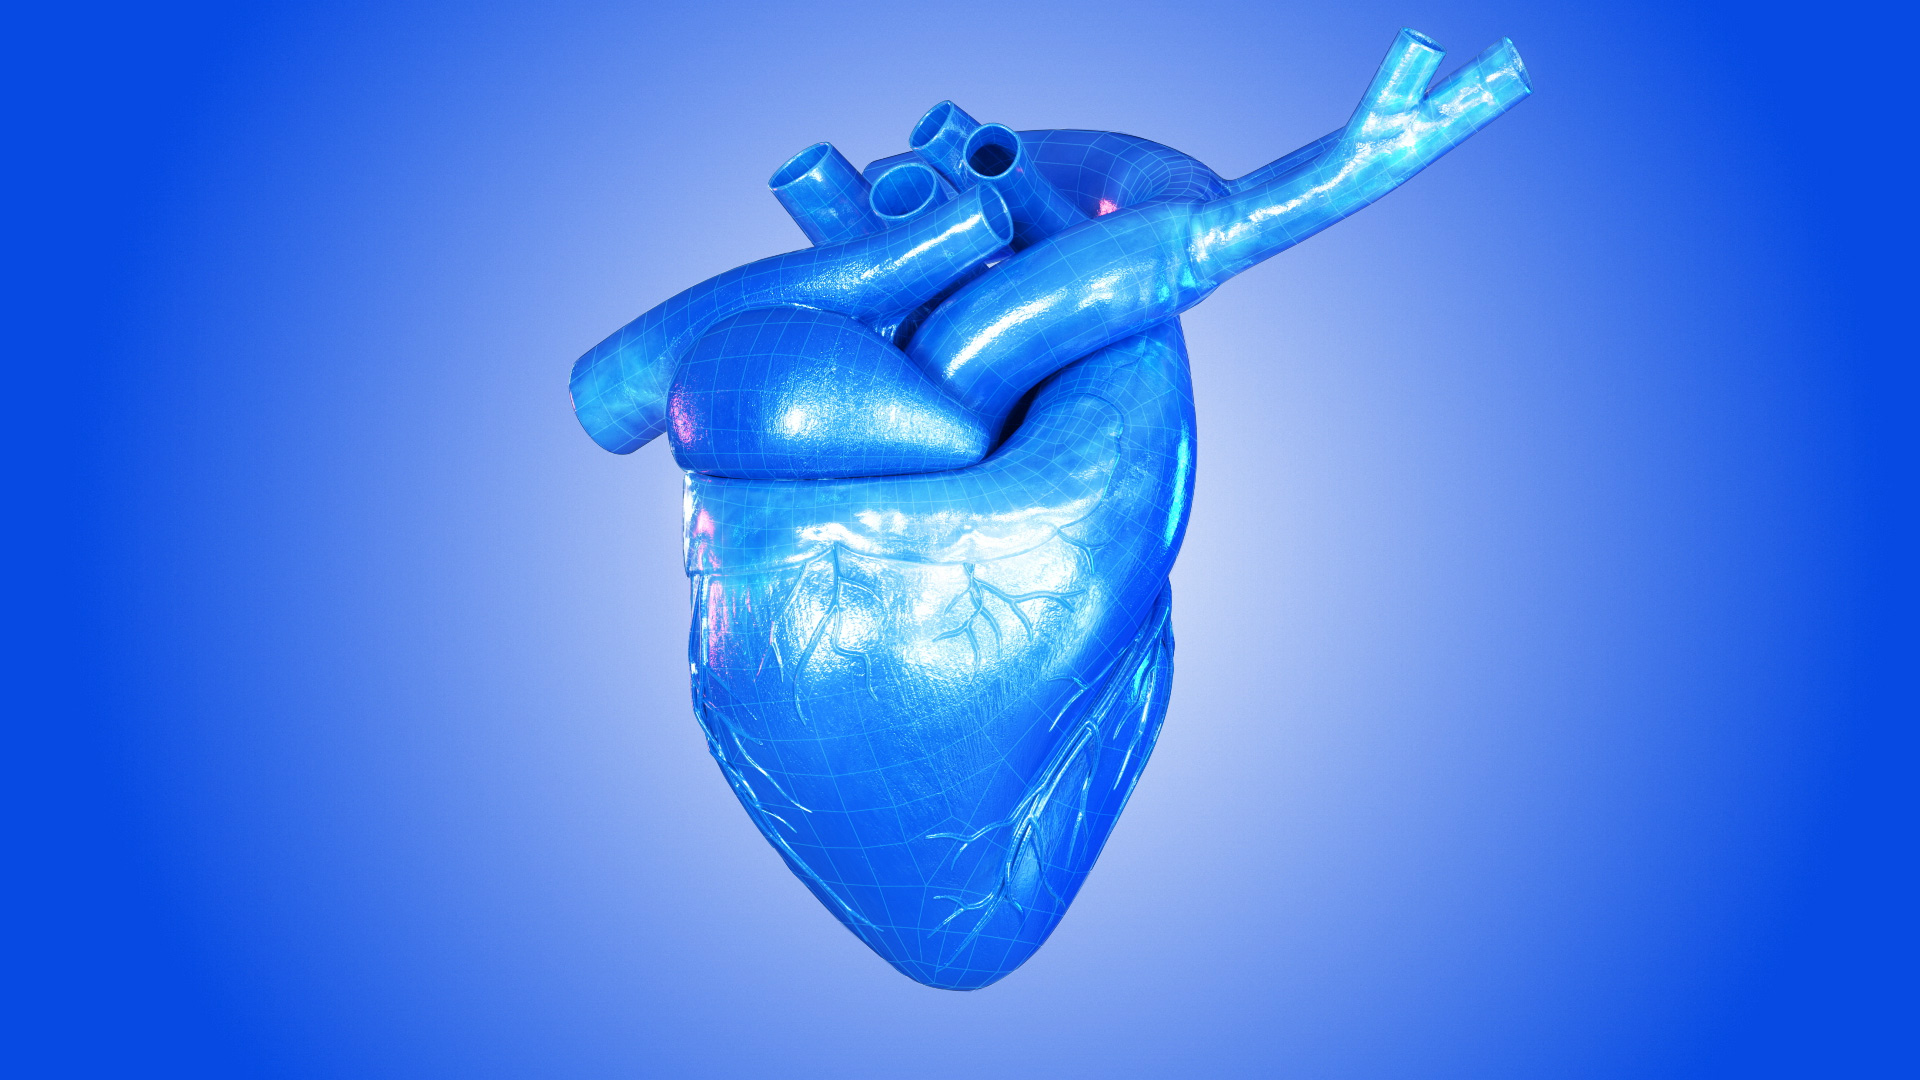 GE_Healthcare_Blue_Heart